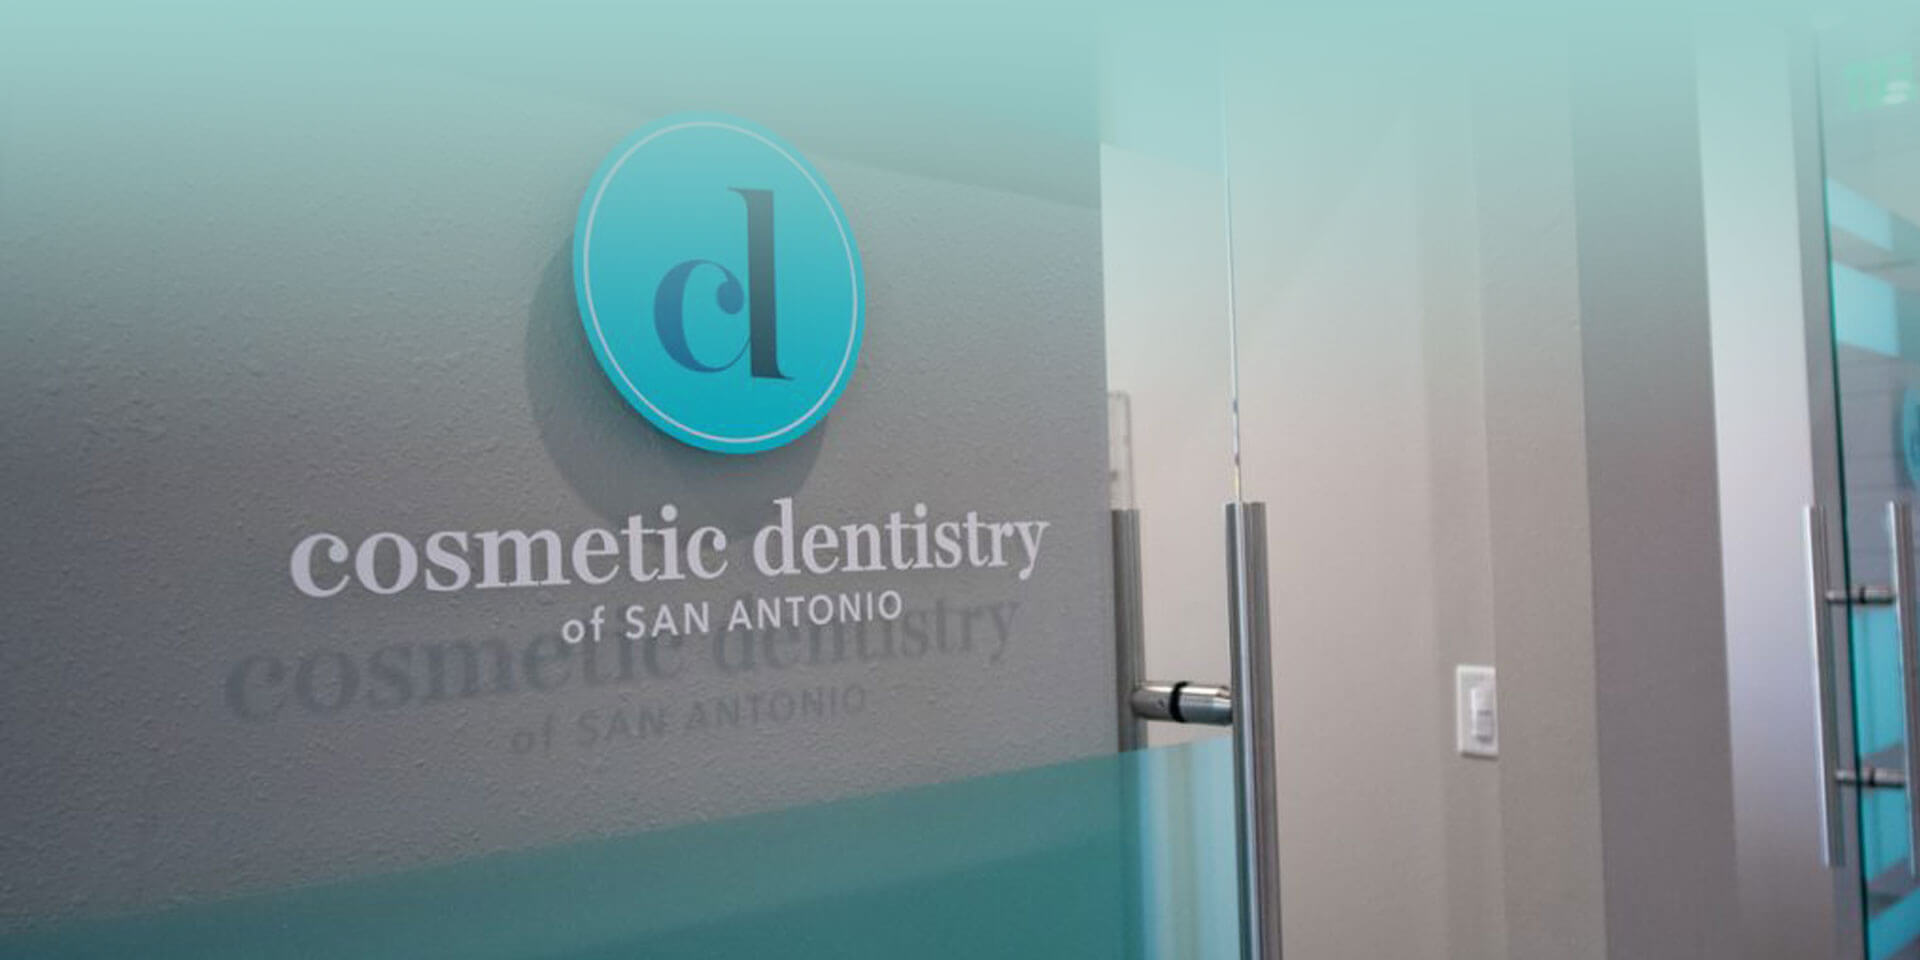 Interior view of Cosmetic Dentistry of San Antonio